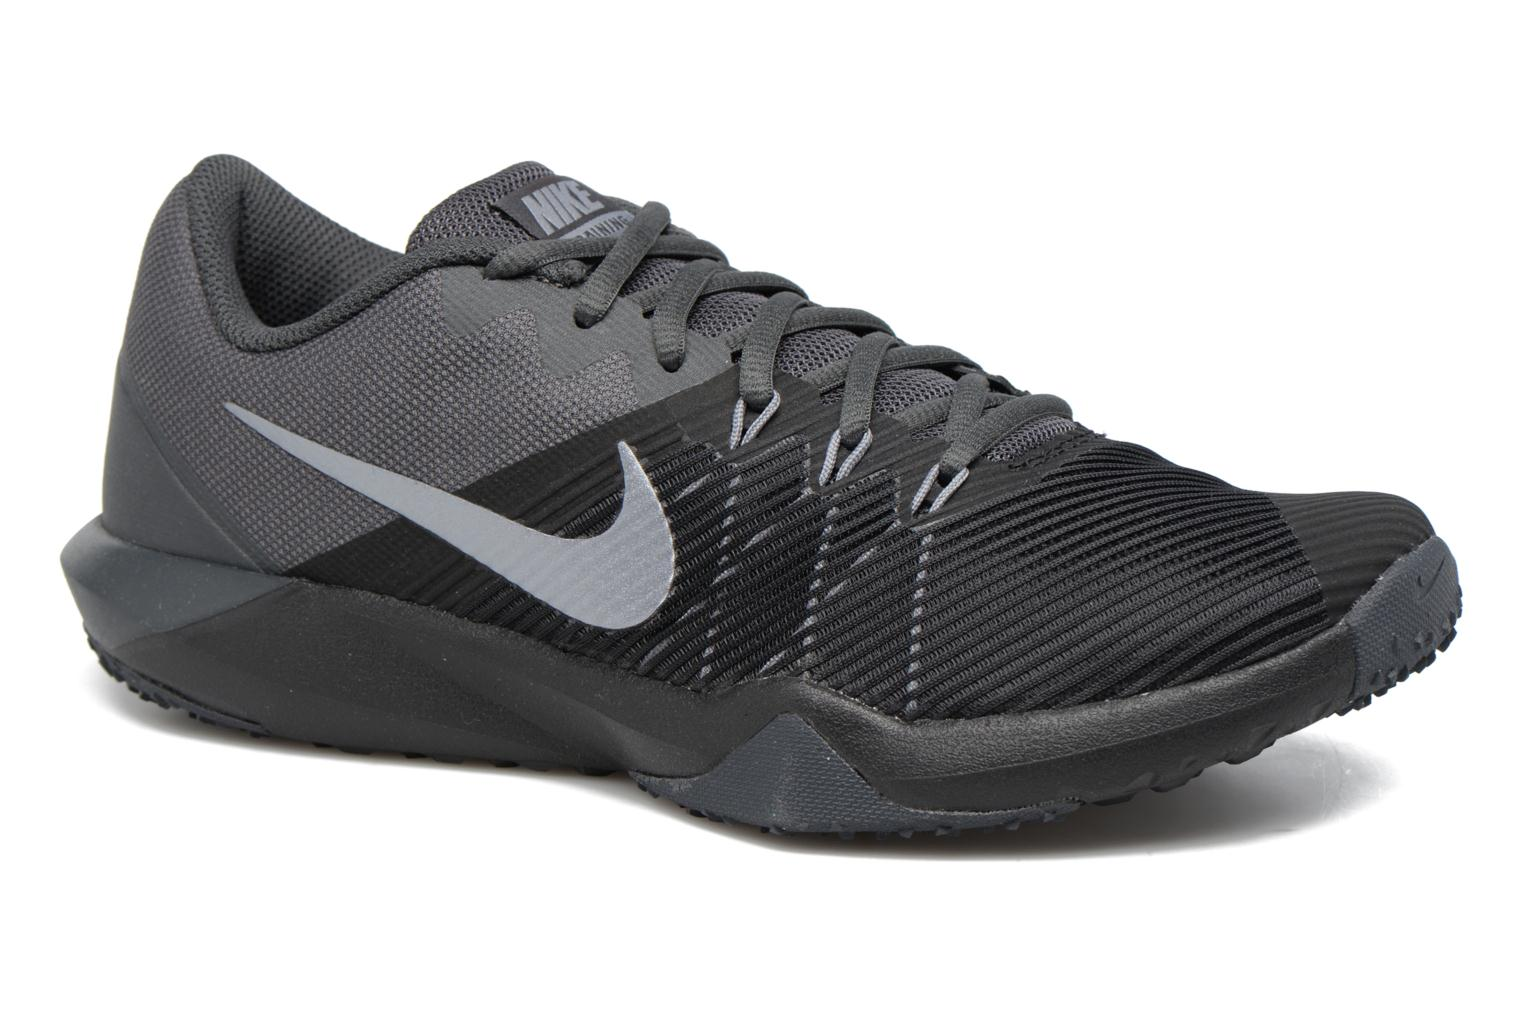 Nike Retaliation Tr Black/Mtlc Cool Grey-Anthracite